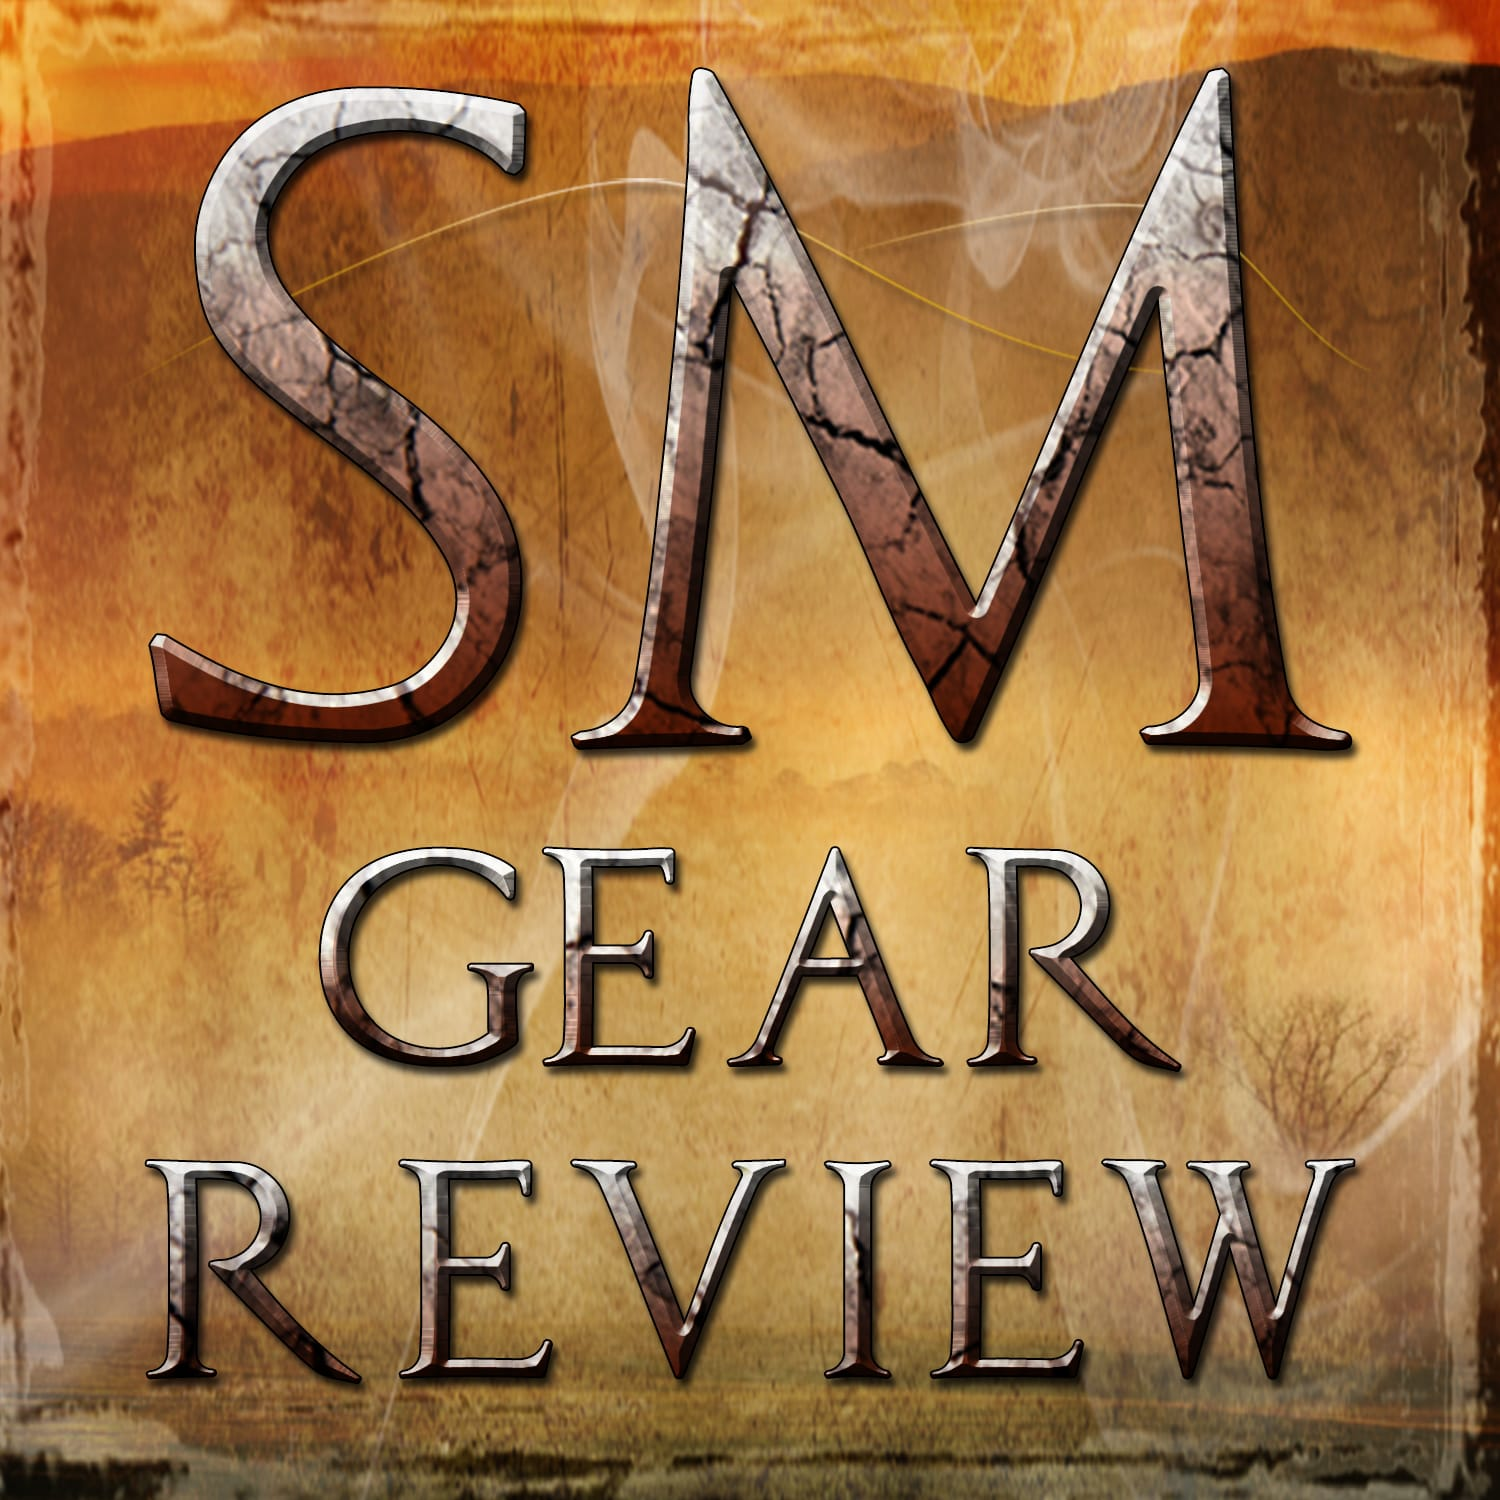 Smoky Mountain Gear Review Square